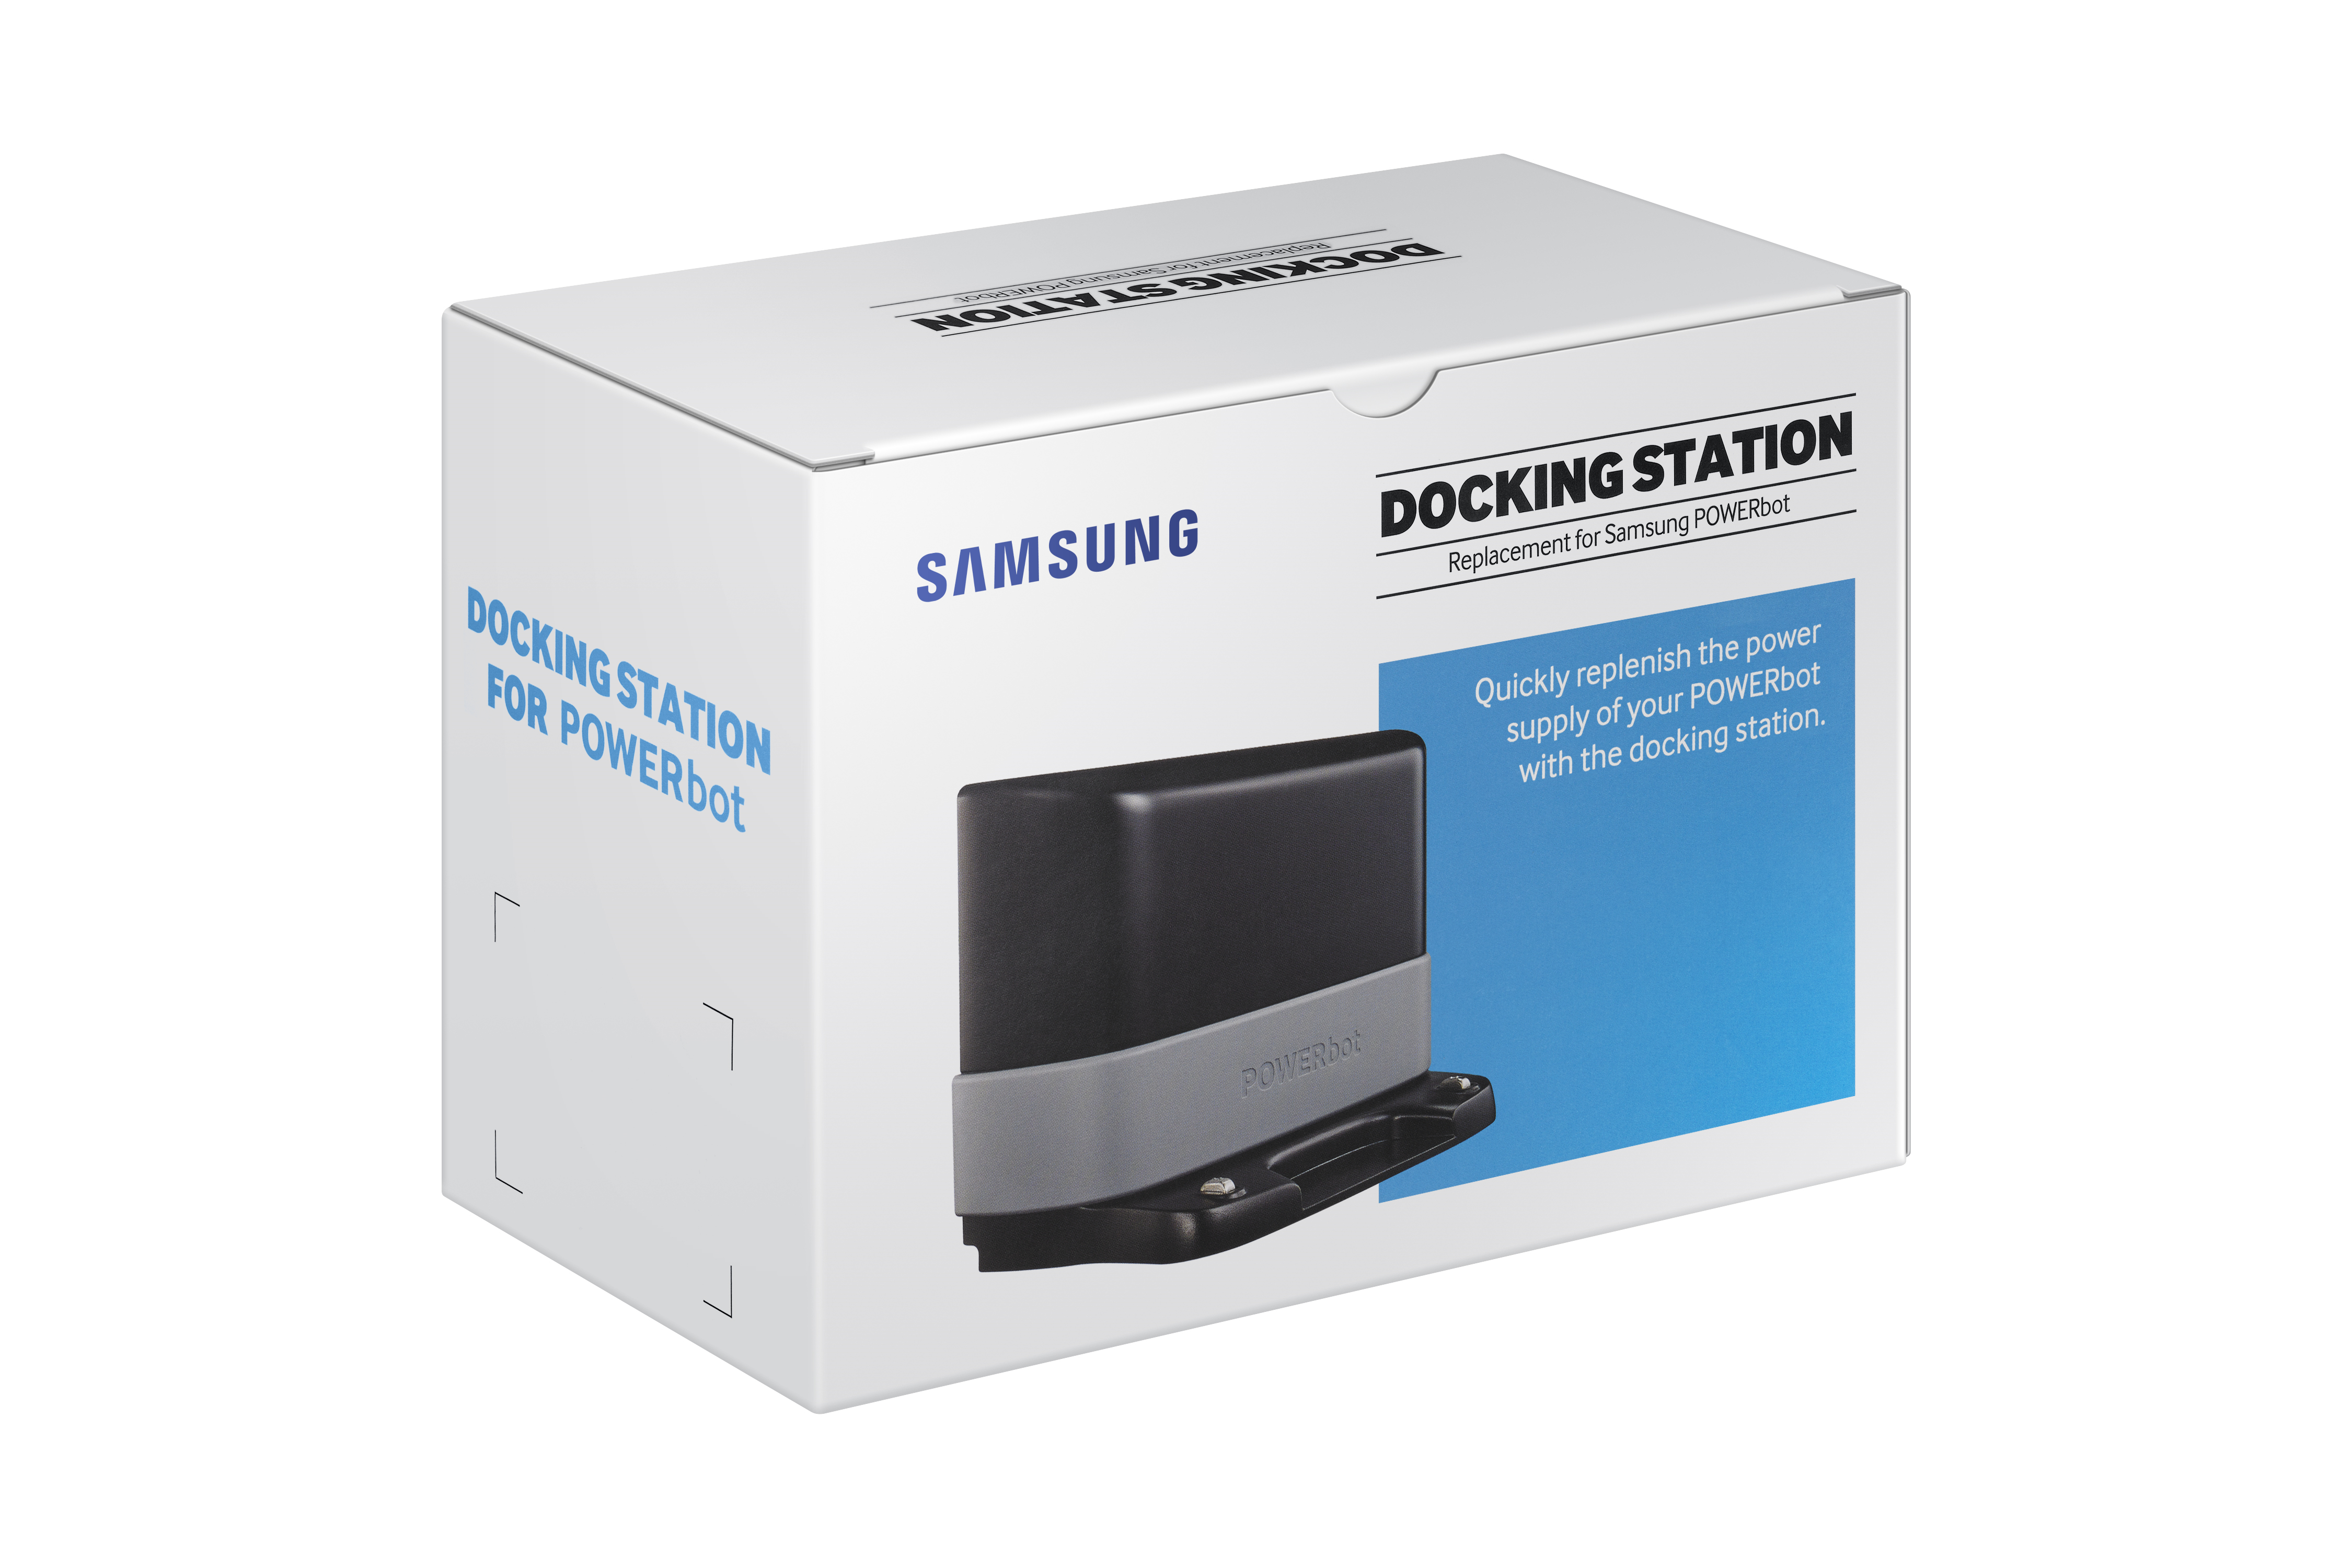 Samsung Powerbot Docking Station-VCA-RDS10 | Bill Smith